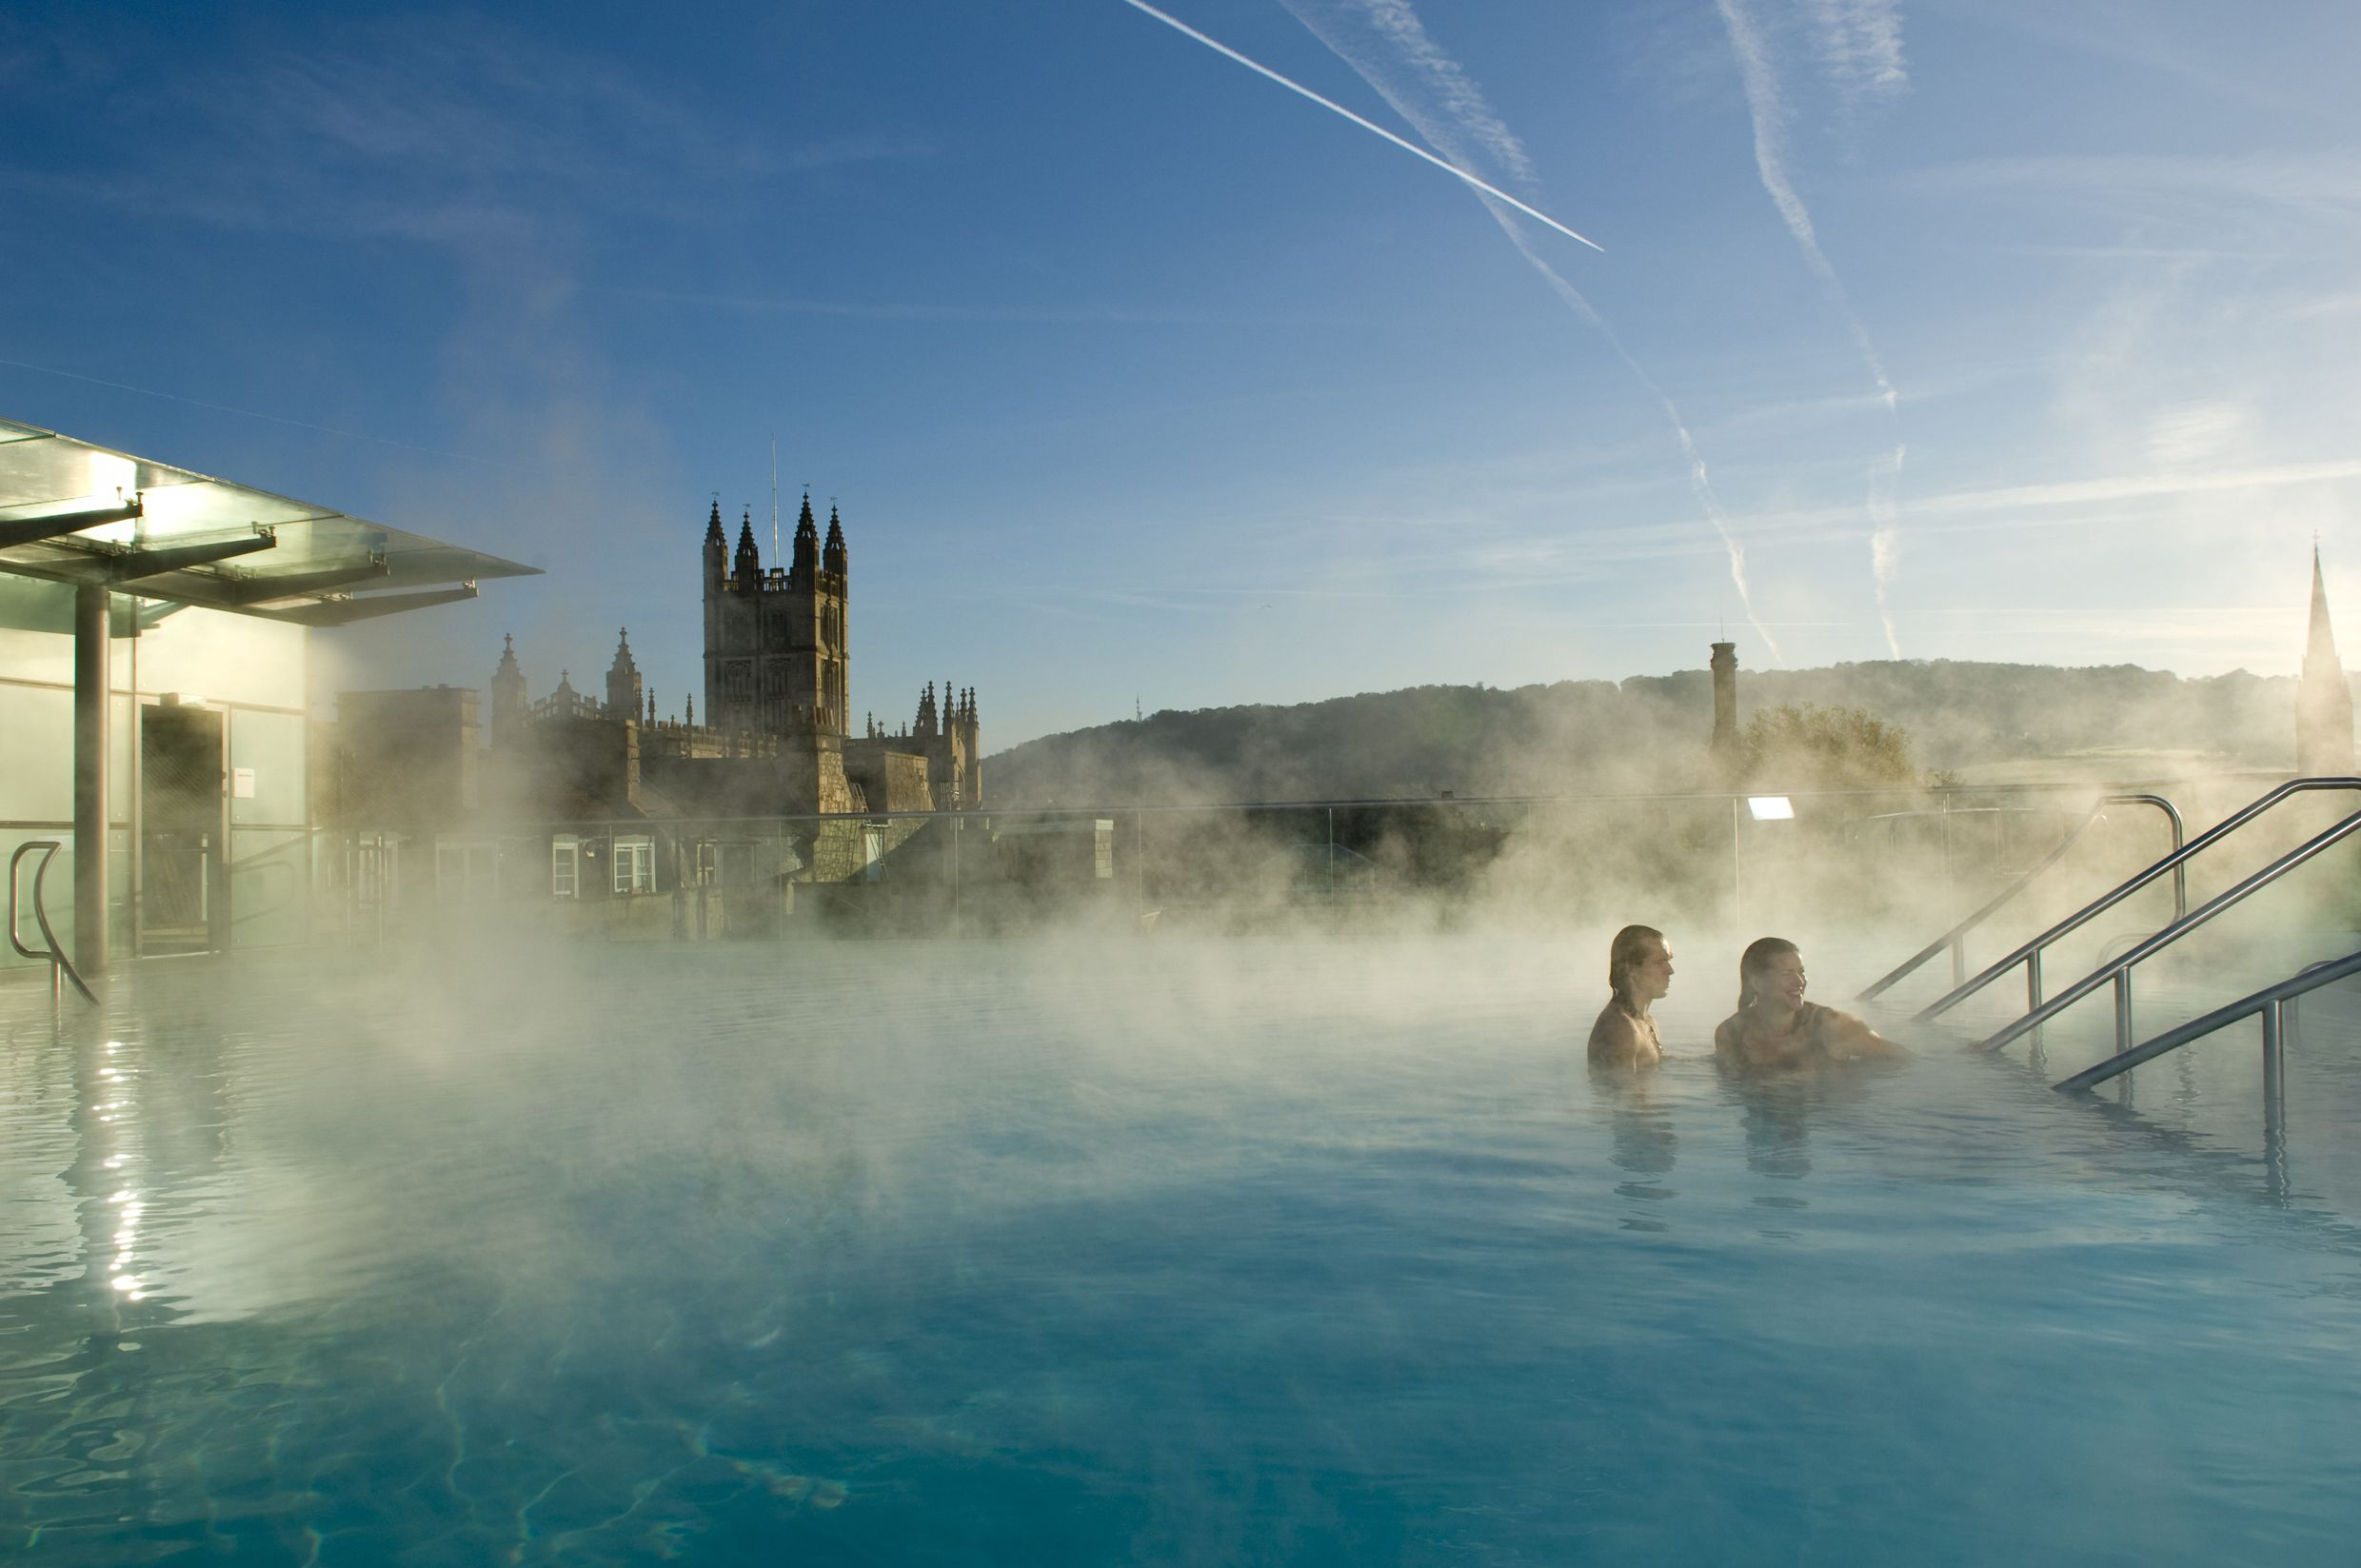 Warm yourself in natural hot spring water during a winter visit to Bath.